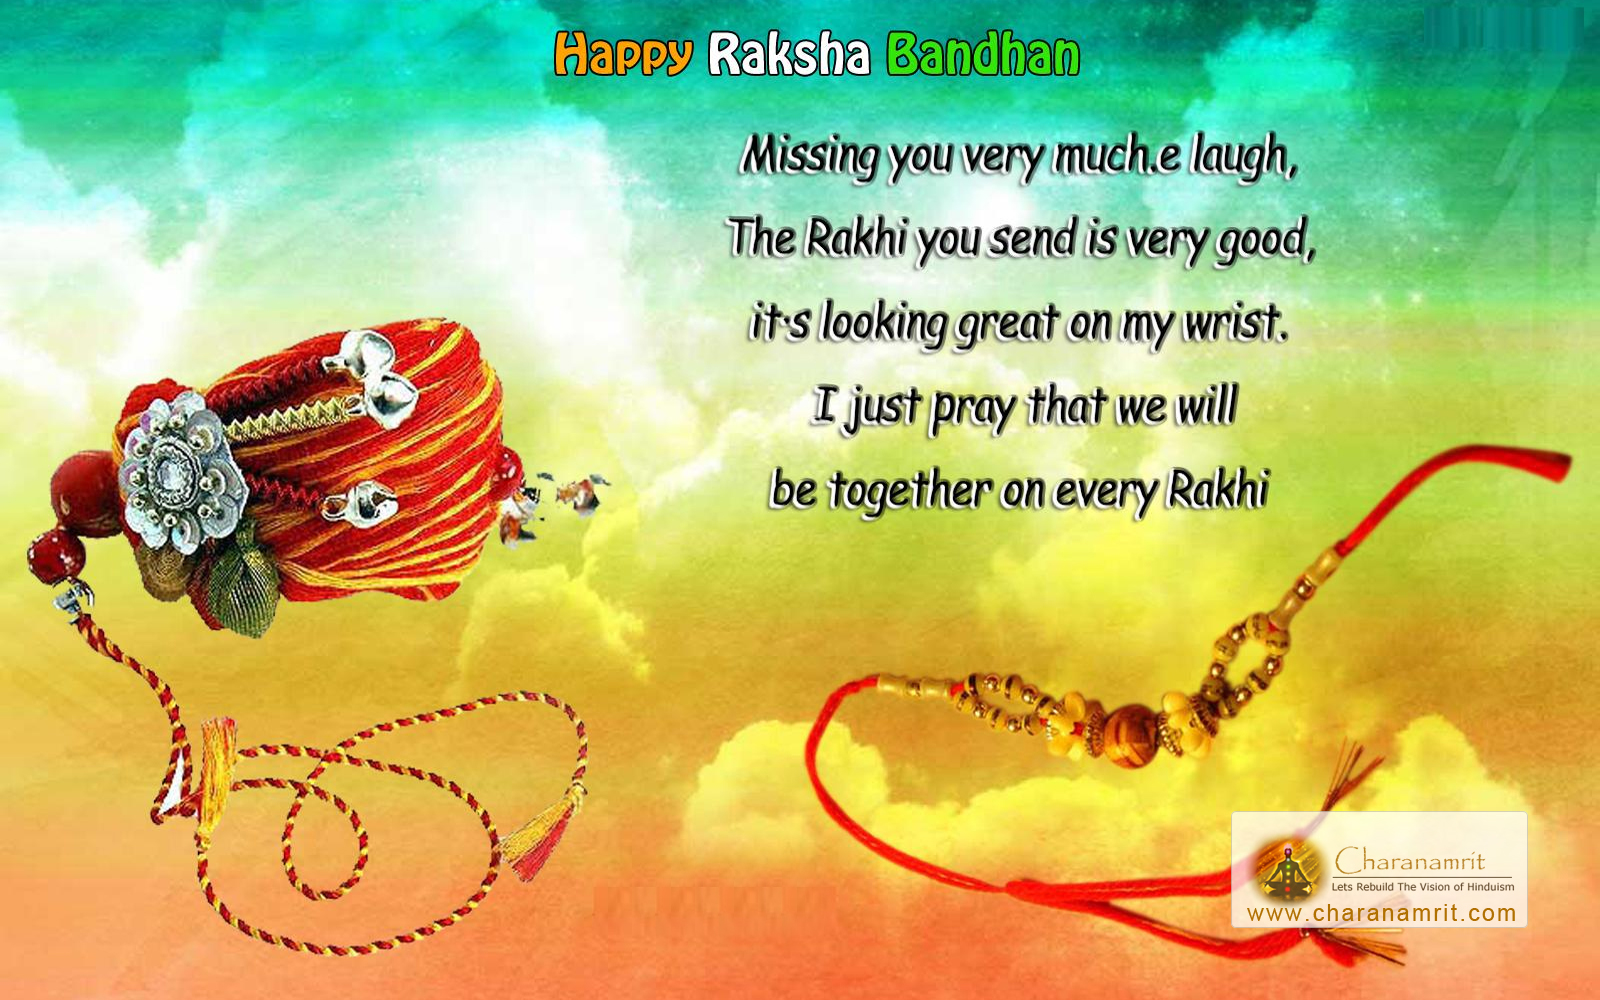 Raksha Bandhan Images Wallpaper Photo Pictures HD With Quotes 2018